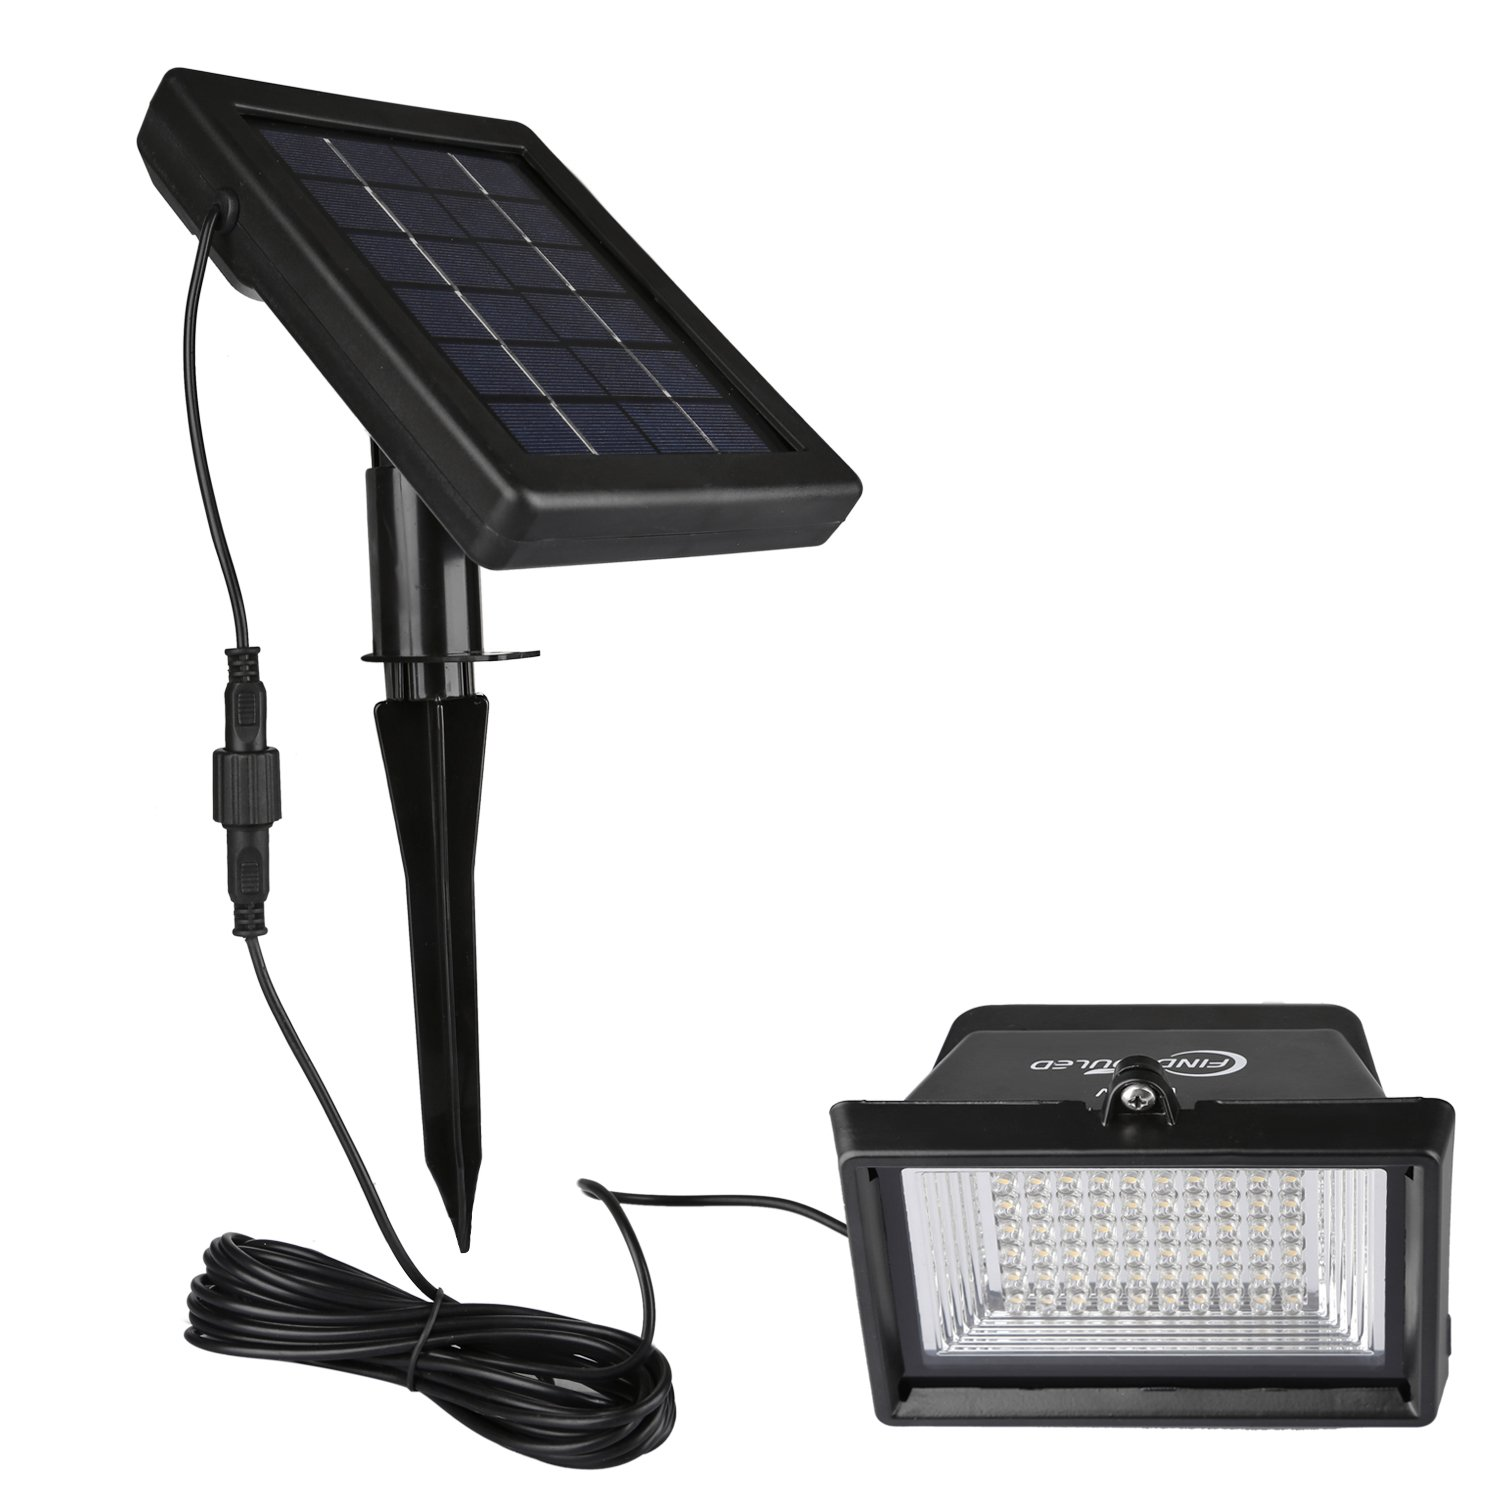 Amazon findyouled solar flood lights outdoor landscape amazon findyouled solar flood lights outdoor landscape lighting 60led120lumen cast aluminium wallin ground lights 2 in 1 adjustable light with a aloadofball